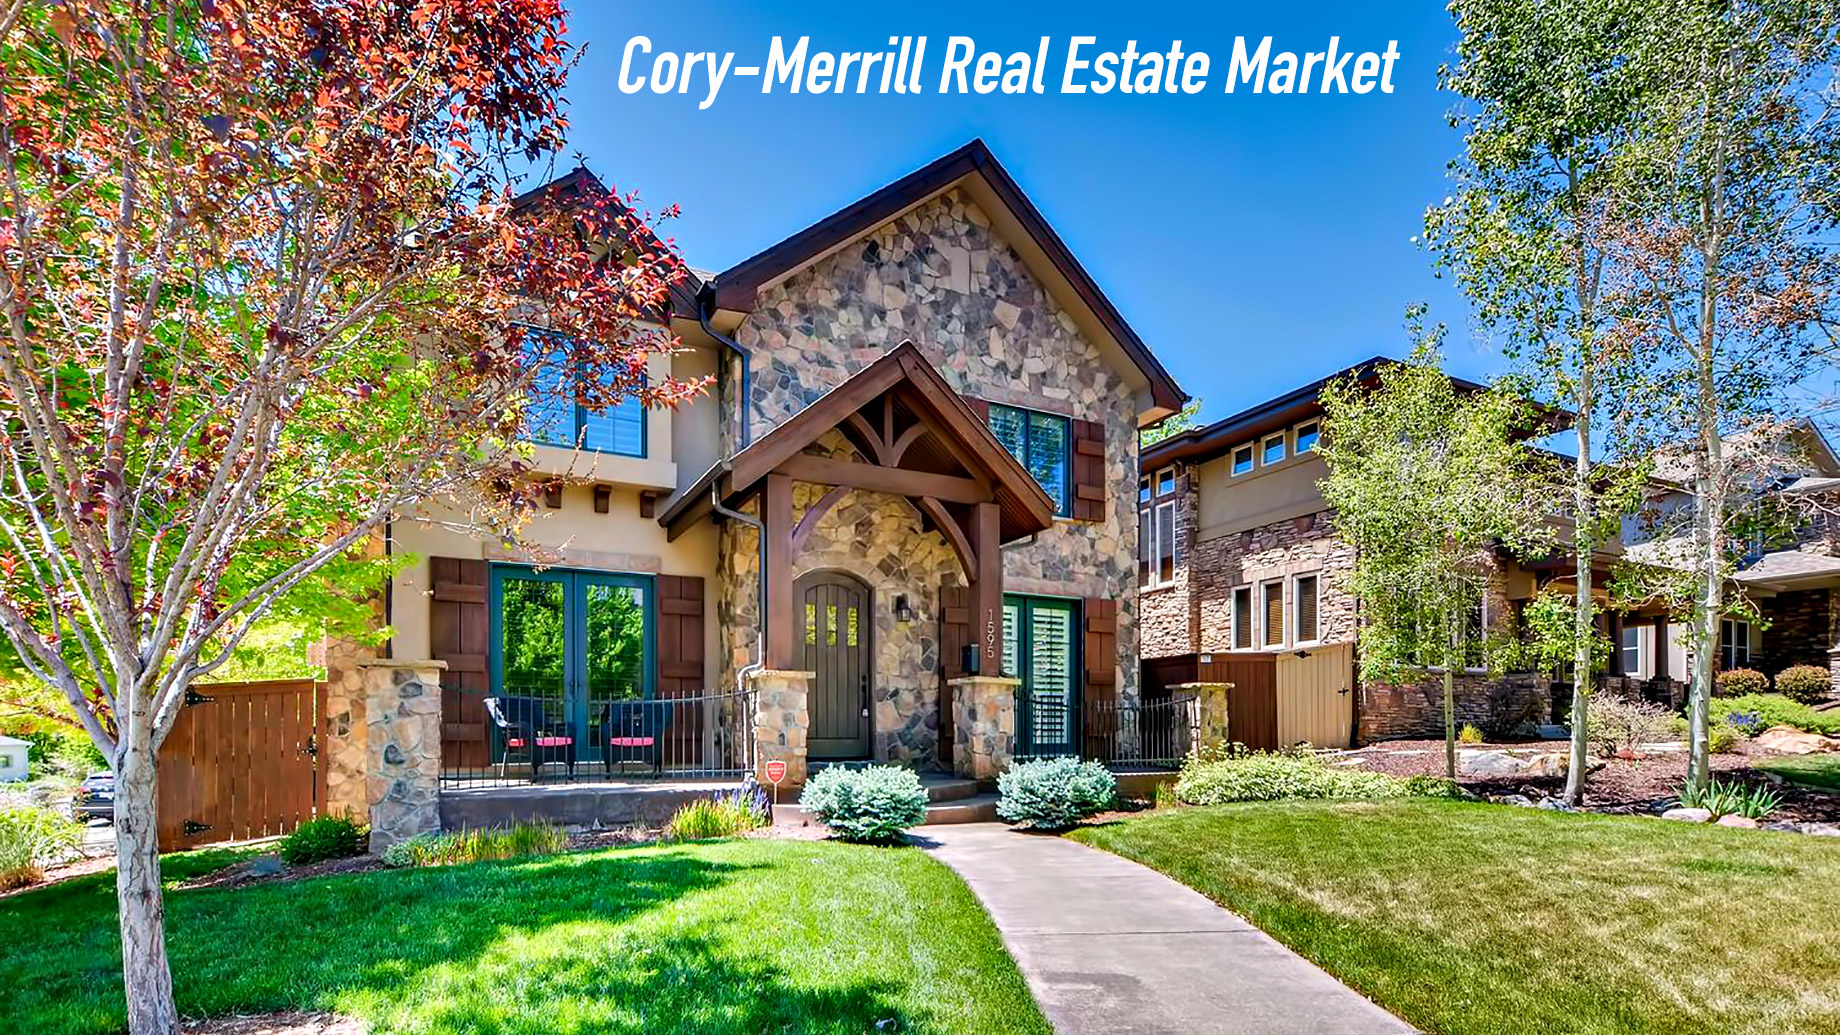 Analysis of the Cory-Merrill Real Estate Market in Colorado